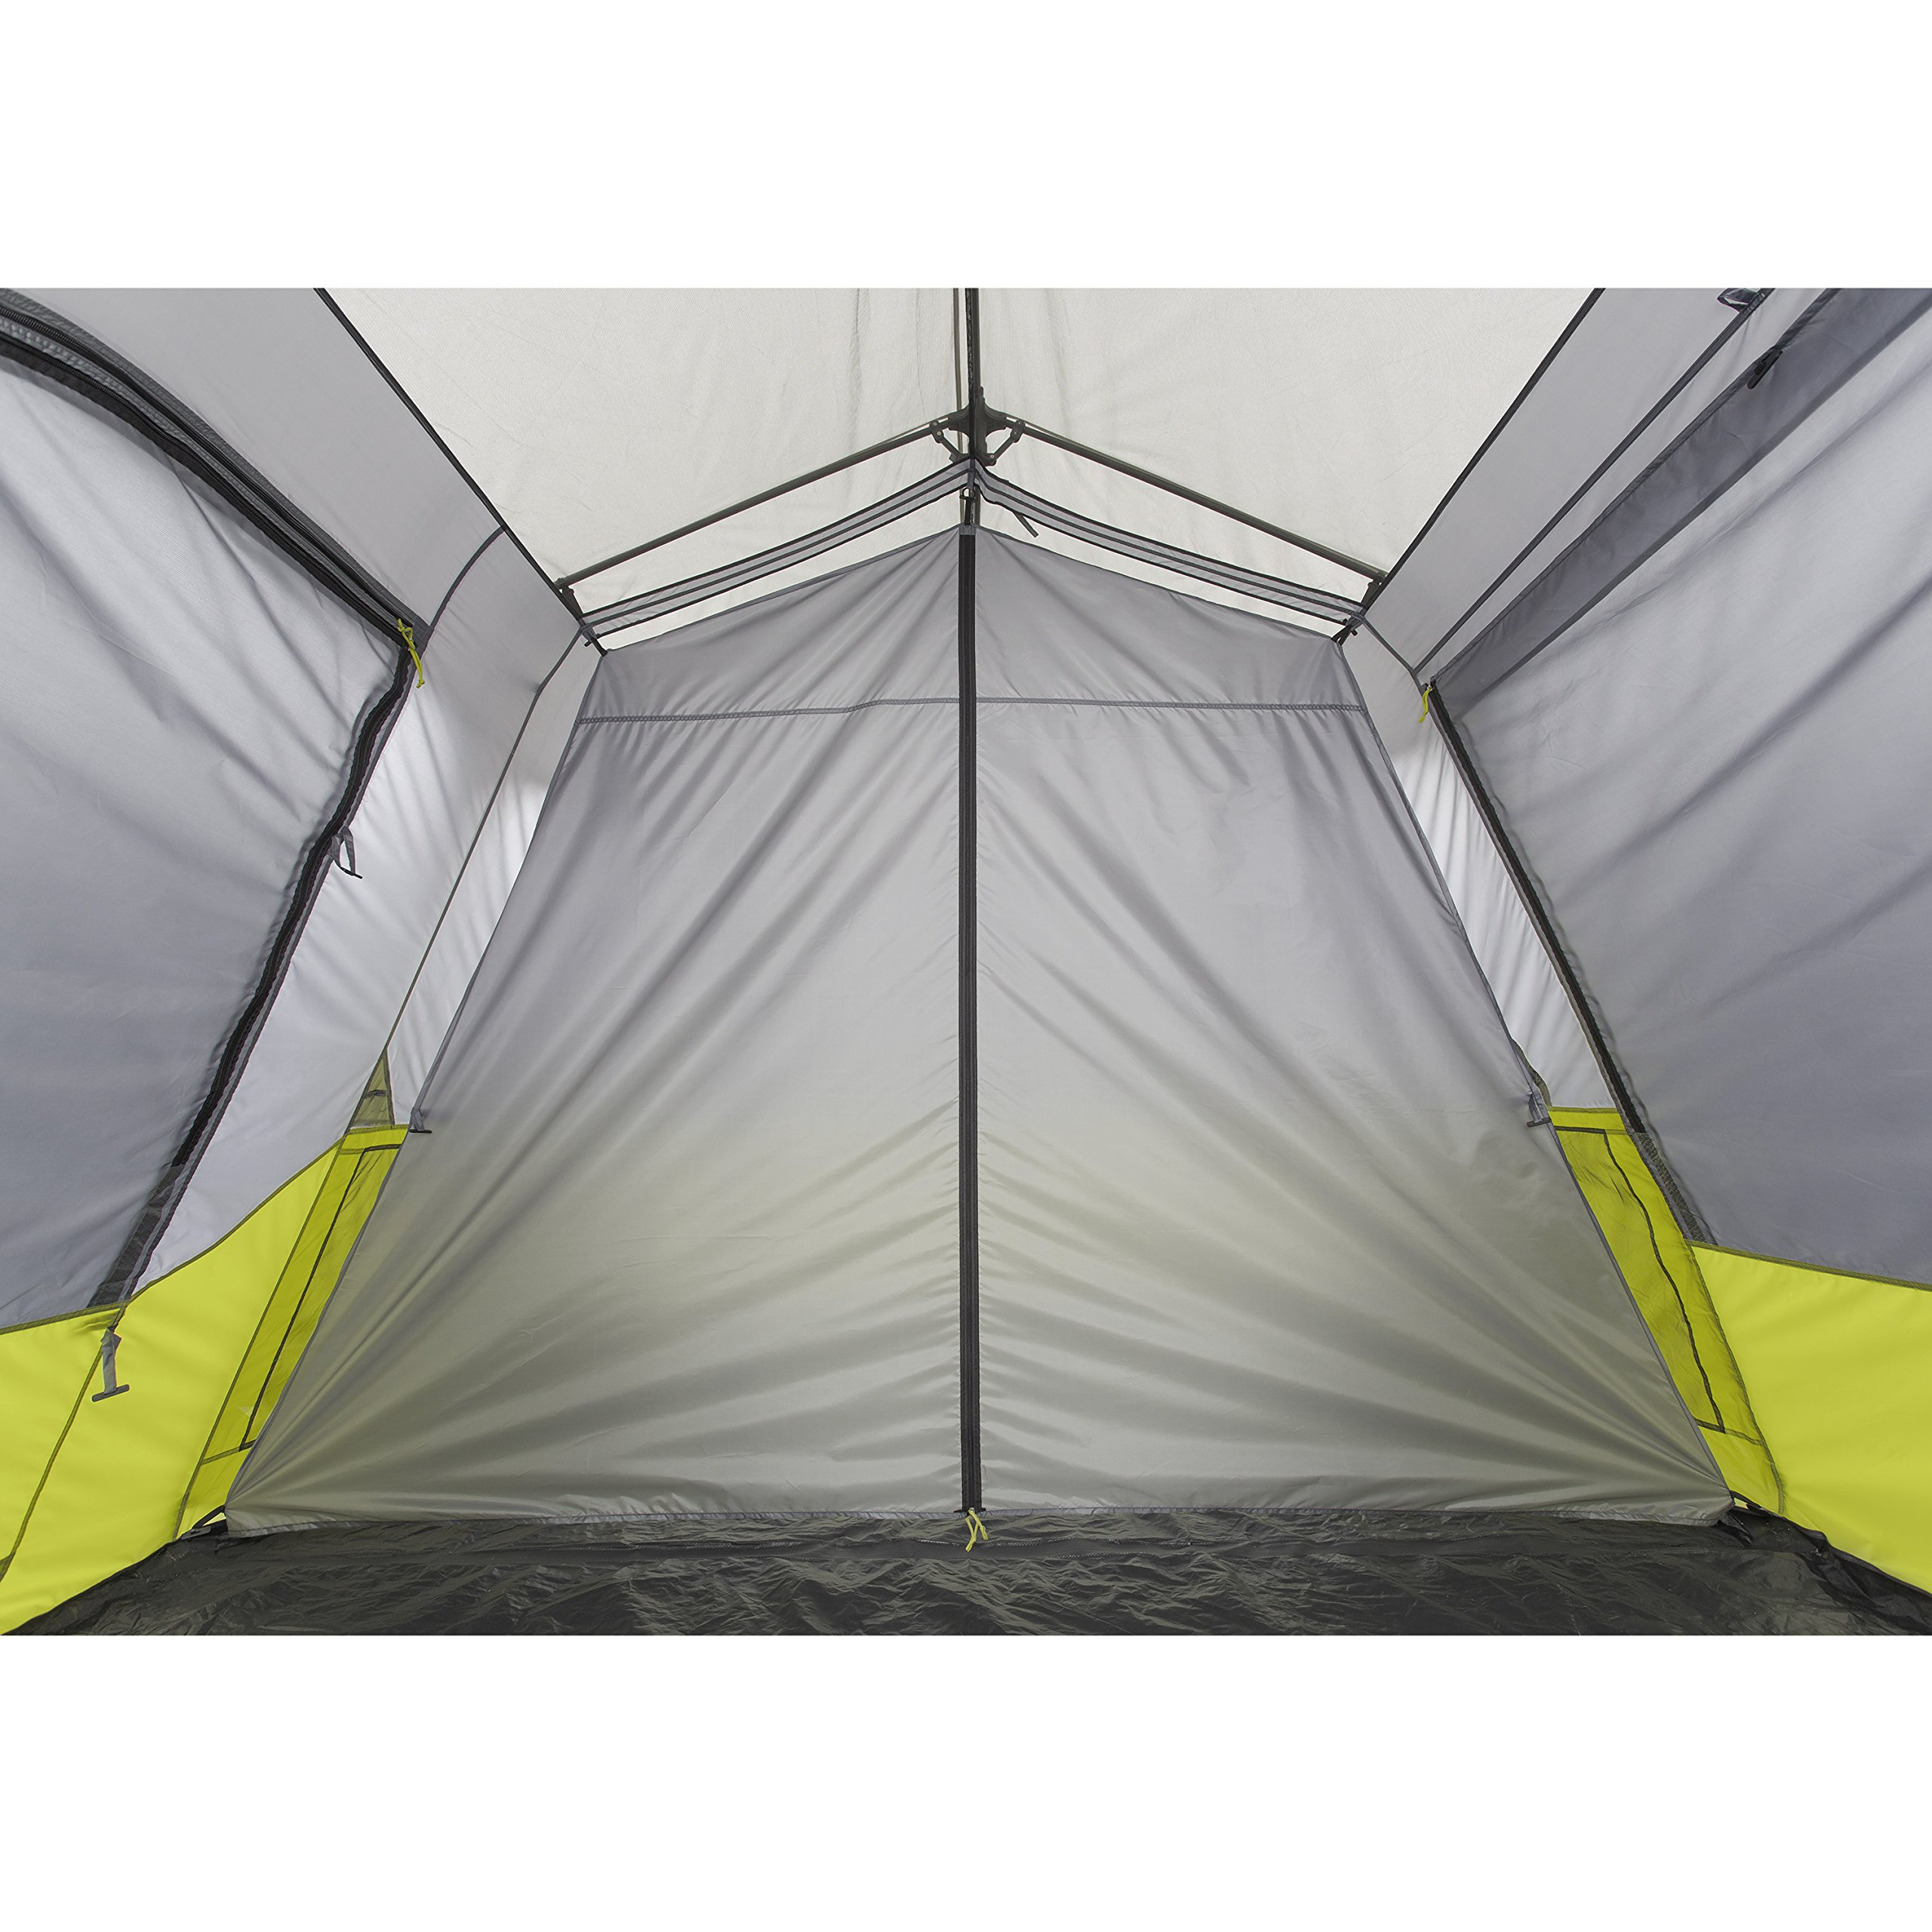 CORE 9 Person Instant Cabin Tent - 14' x 9' by CORE (Image #6)